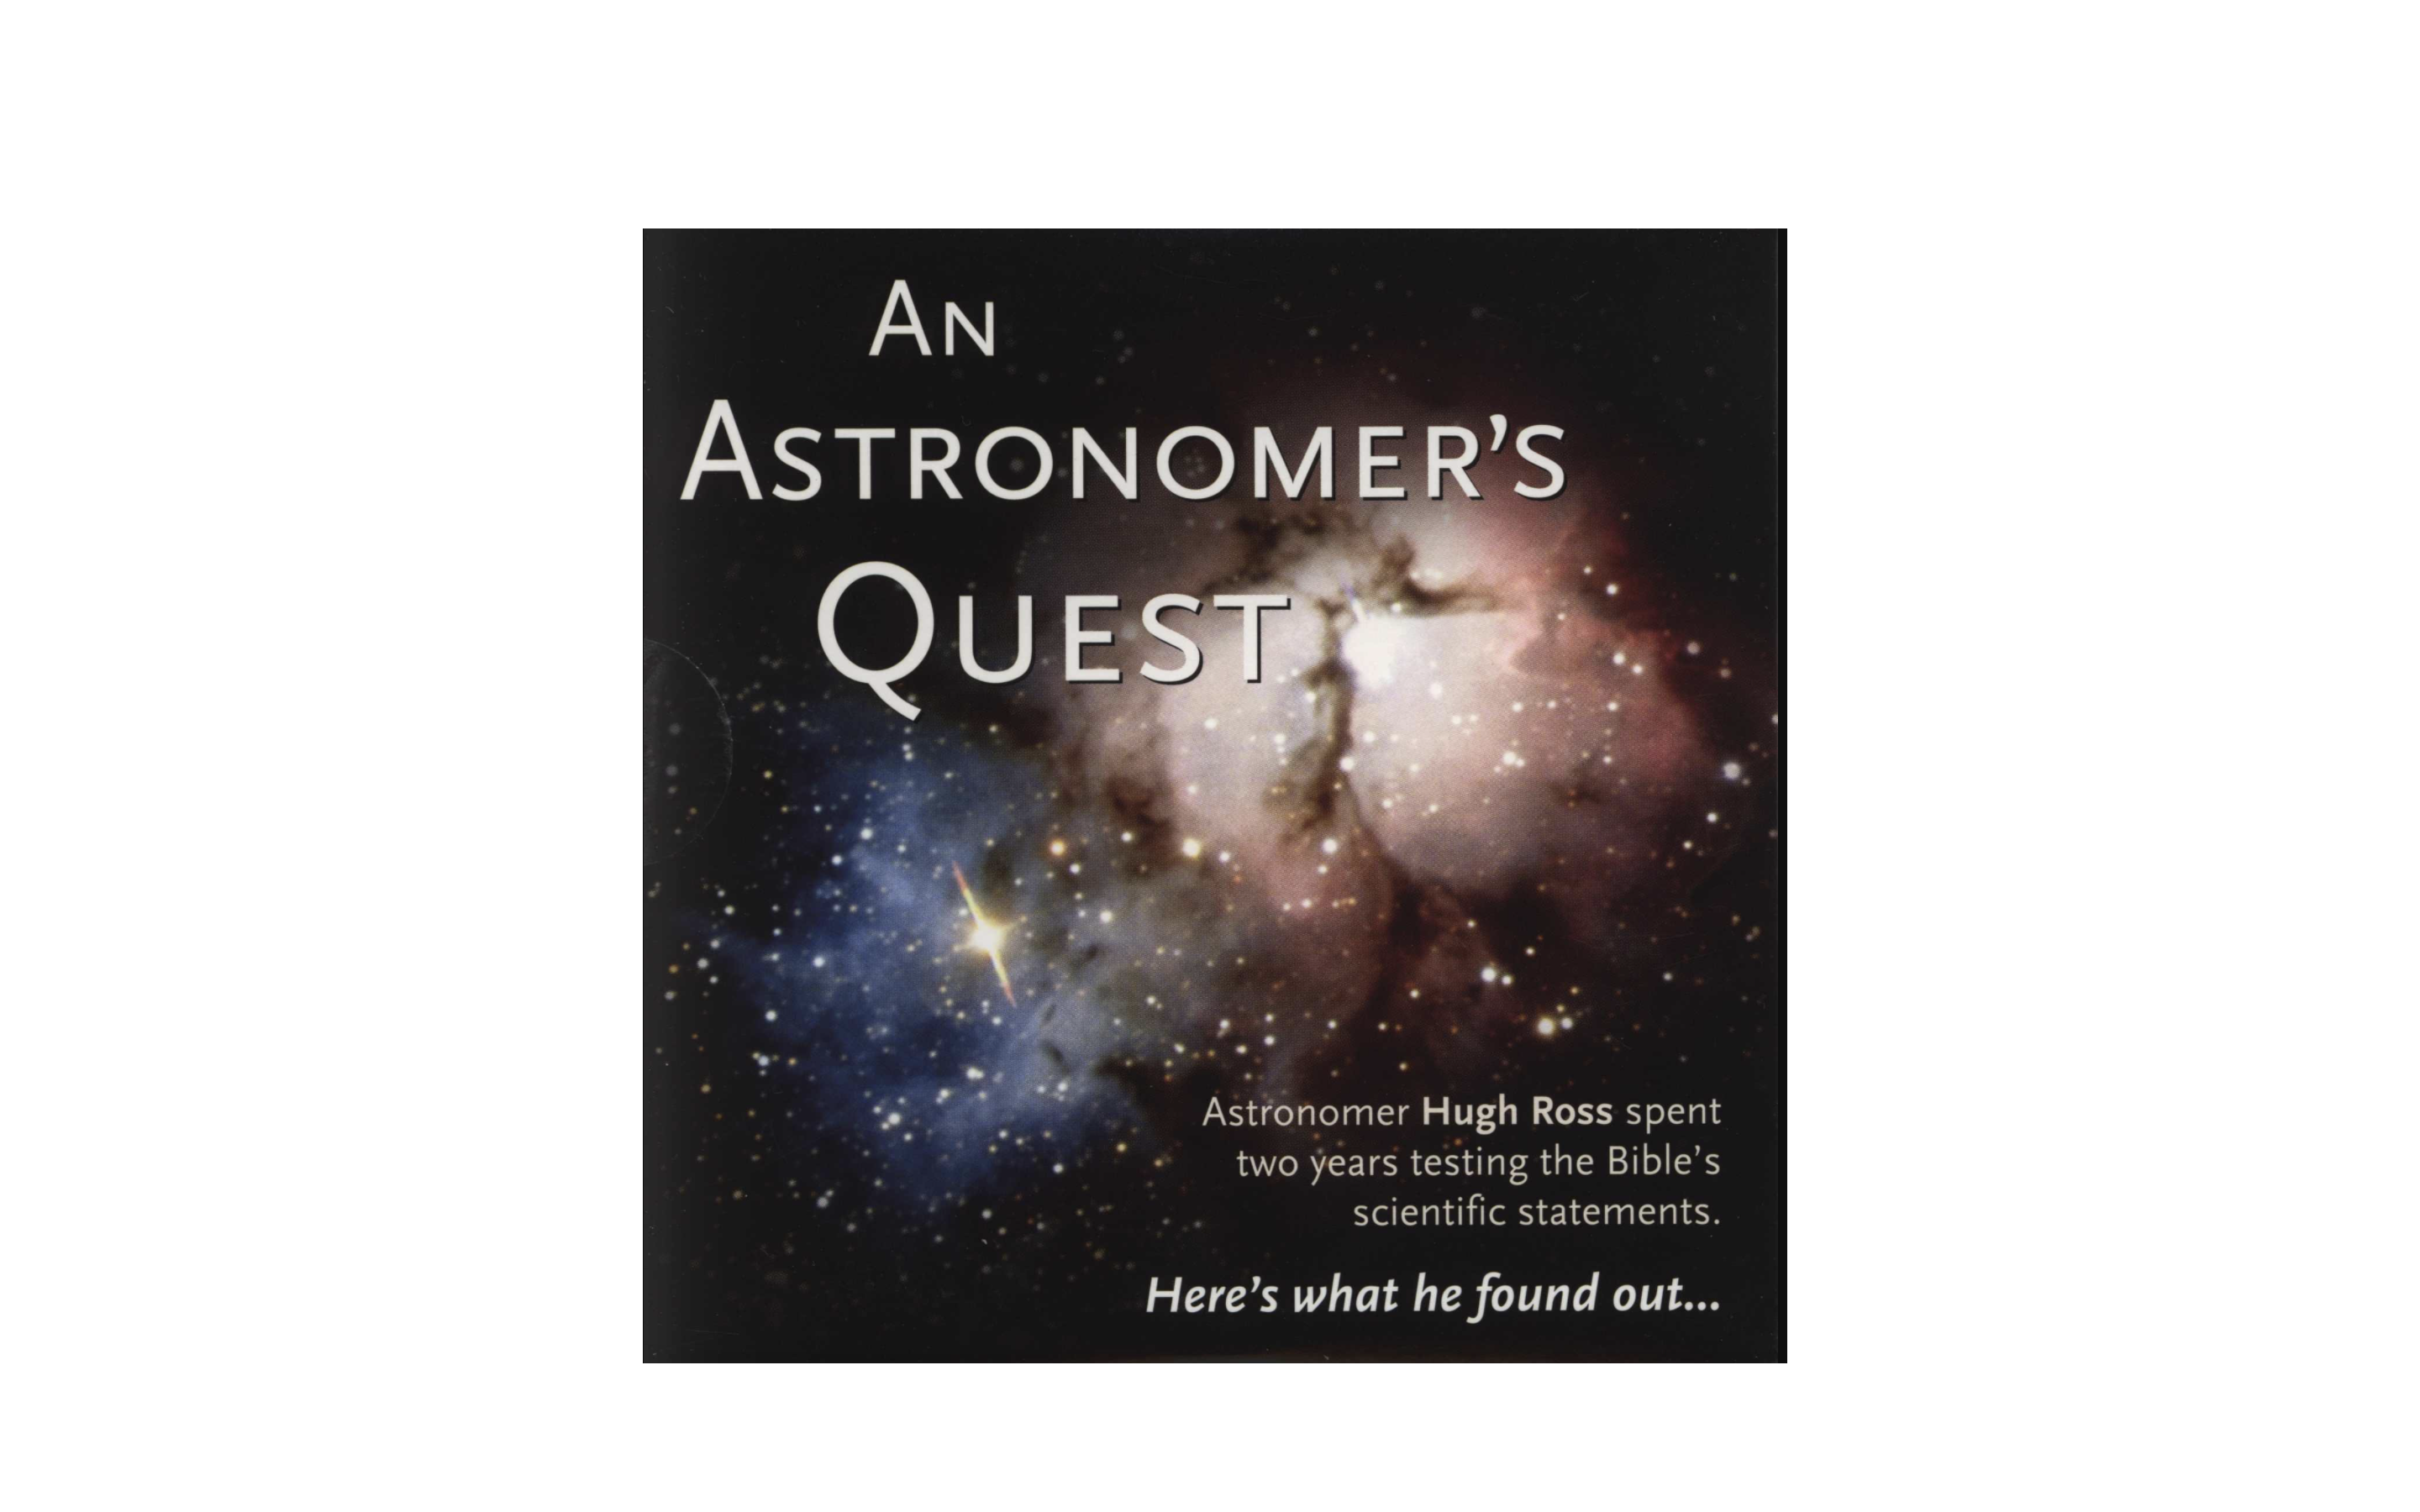 An Astronomer's Quest (Downloadable MP3) Image